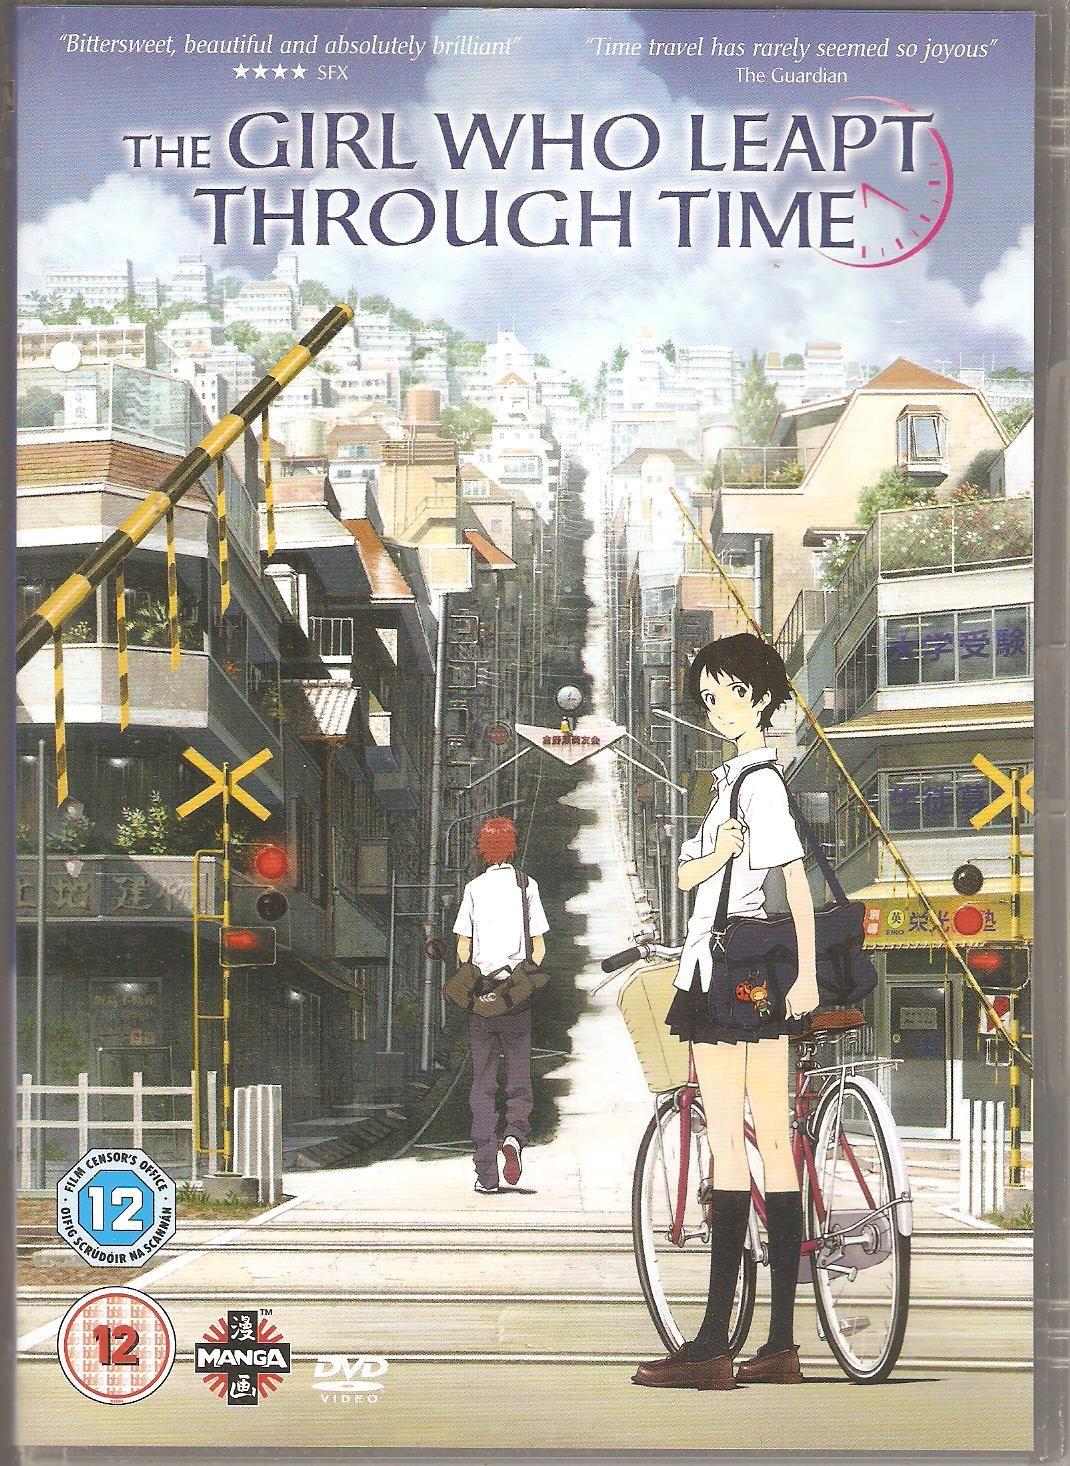 The Girl Who Leapt Through Time. Anime movies, Anime